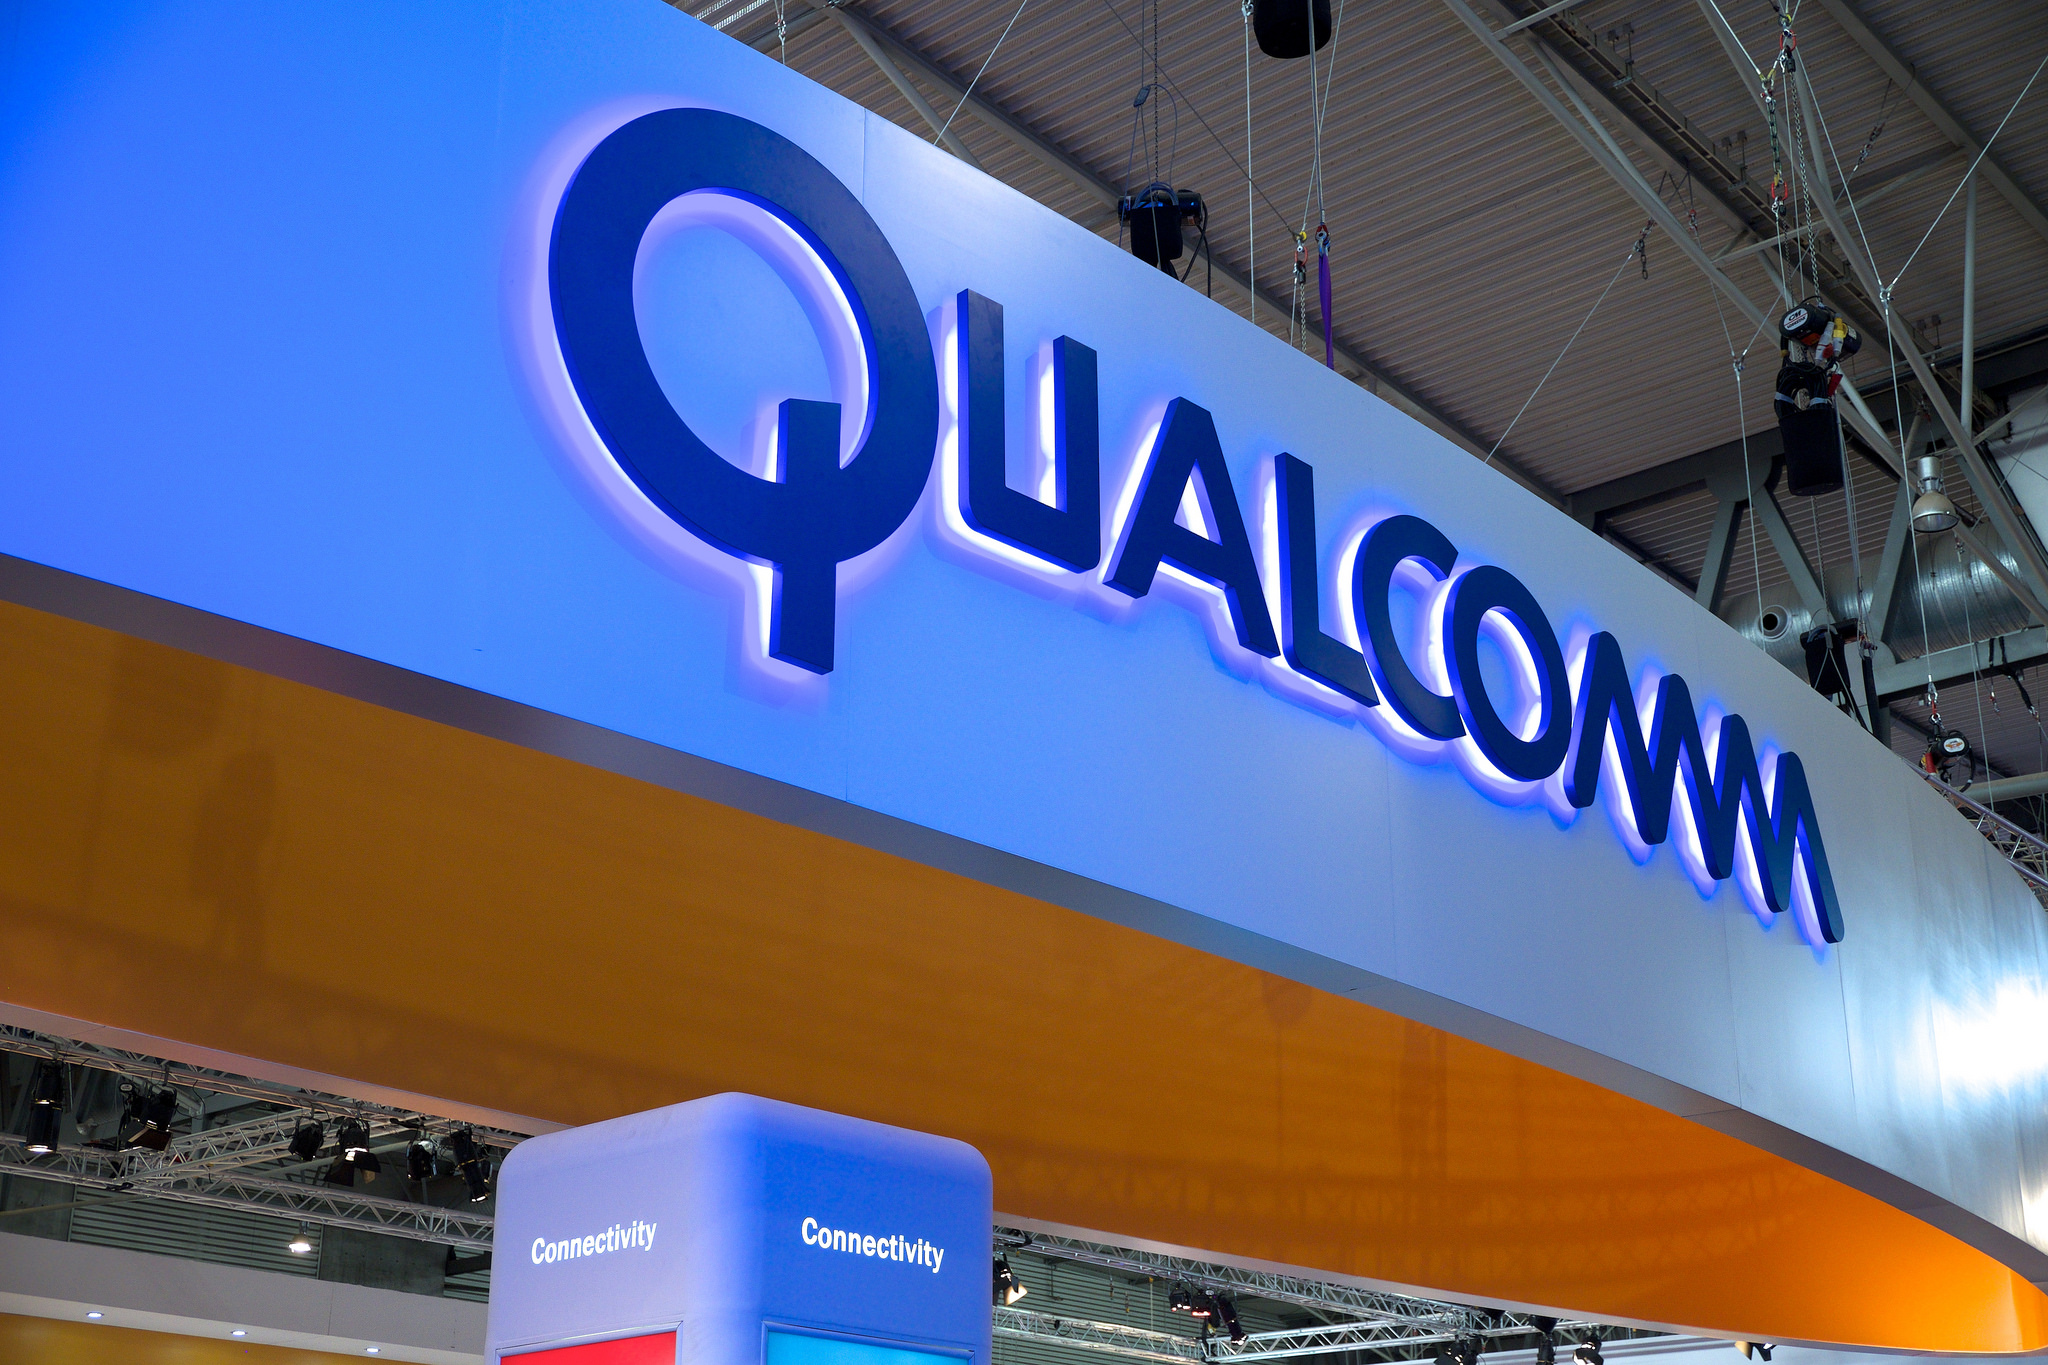 Continued Apple-Qualcomm Legal Battle Leads to iPhone Ban Request